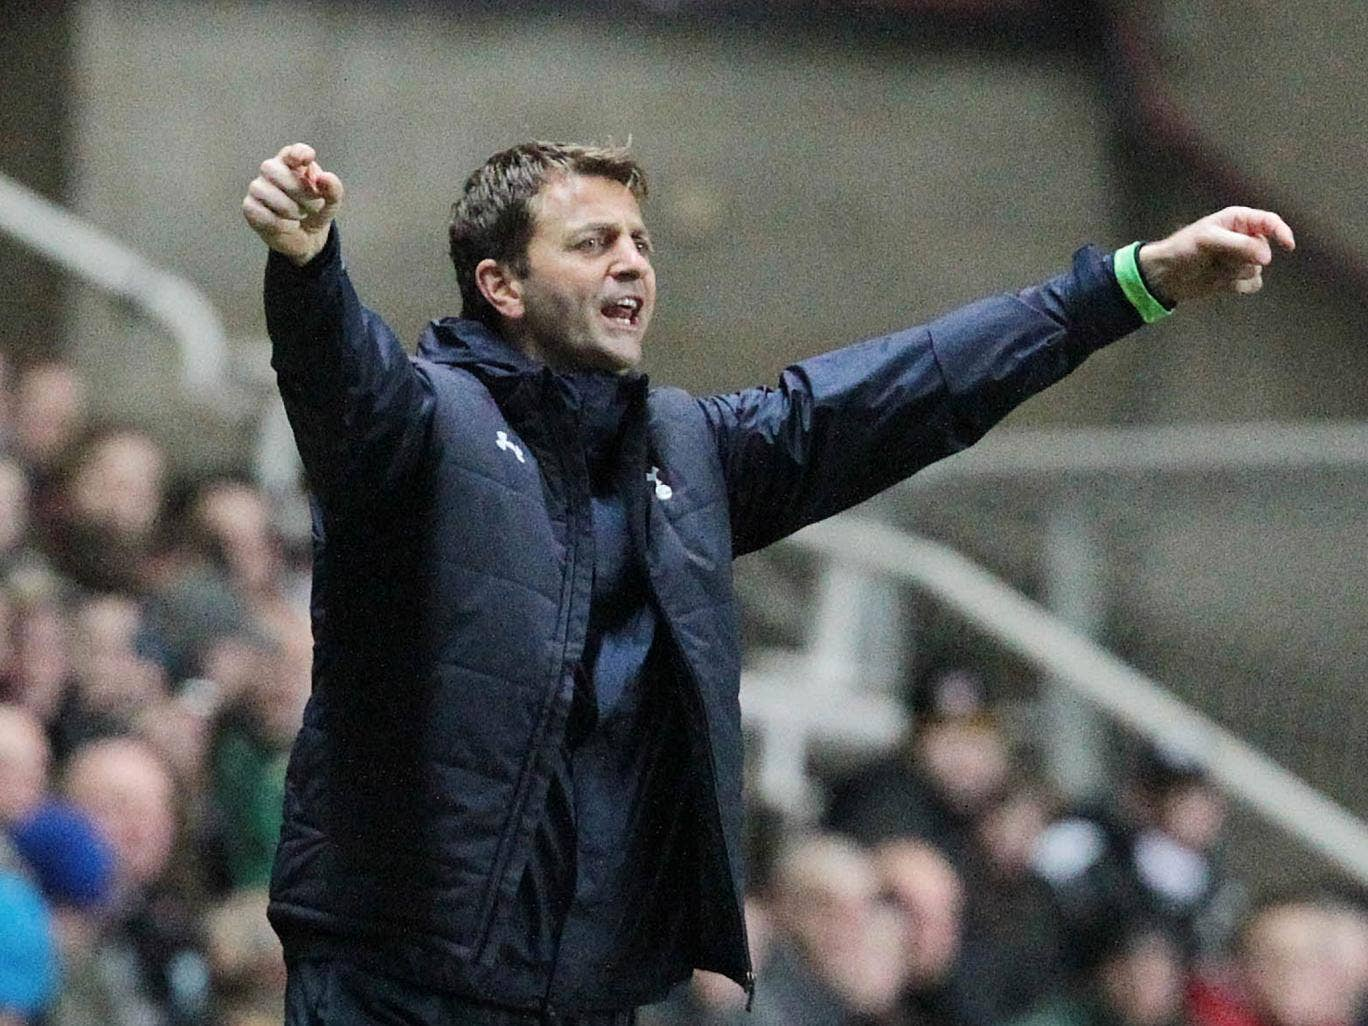 Tottenham manager Tim Sherwood remonstrates from the touchline